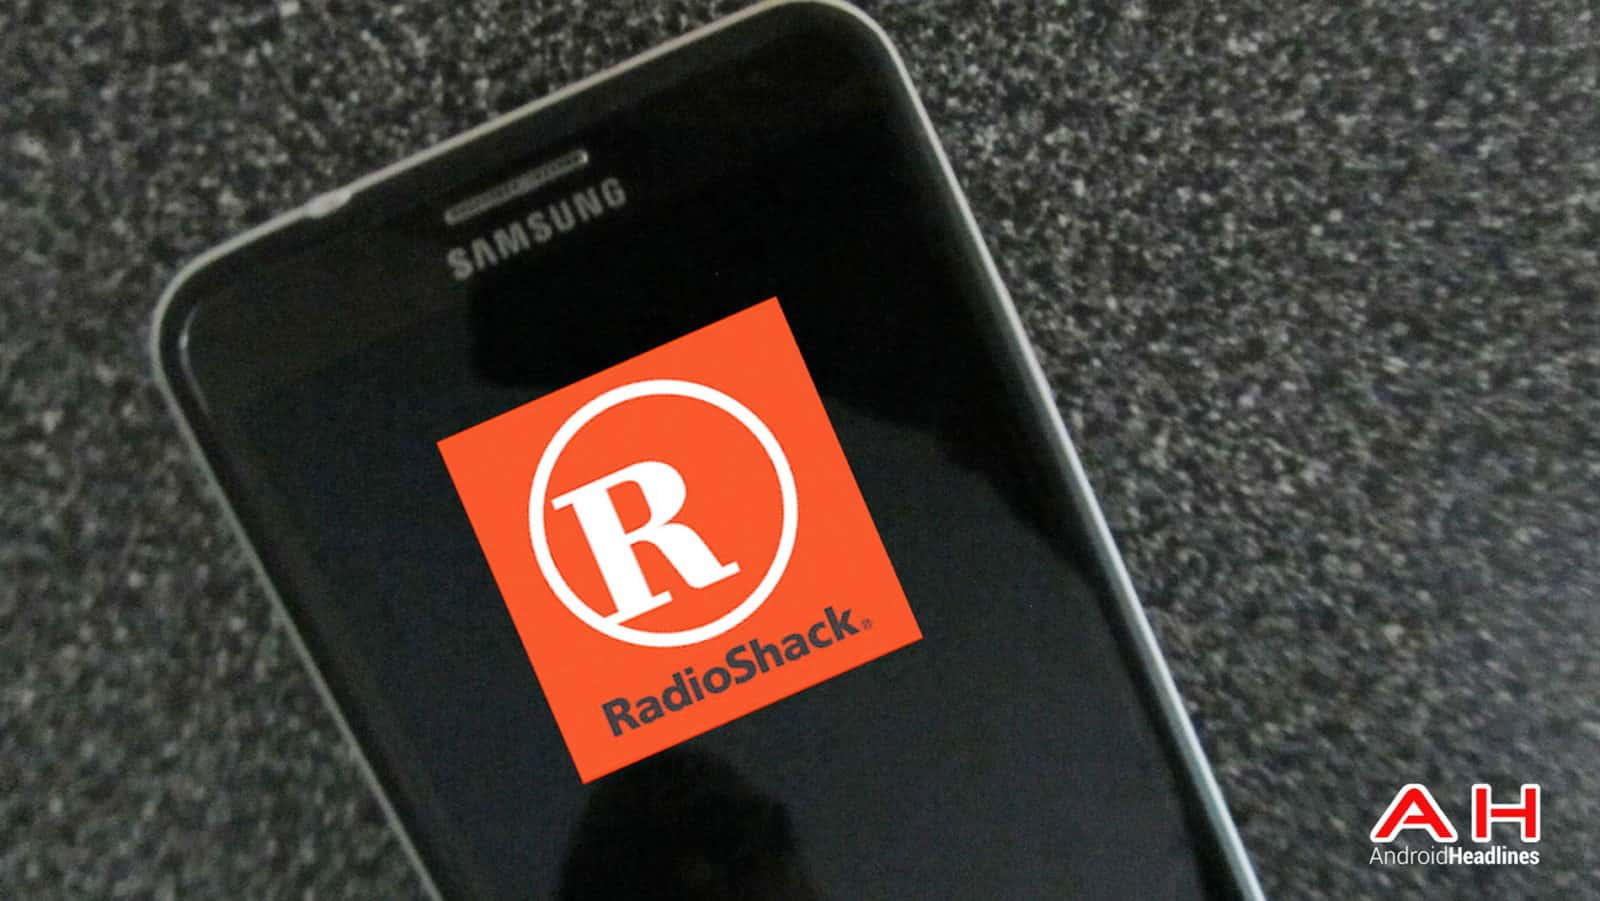 RadioShack Emblem on Screen AH